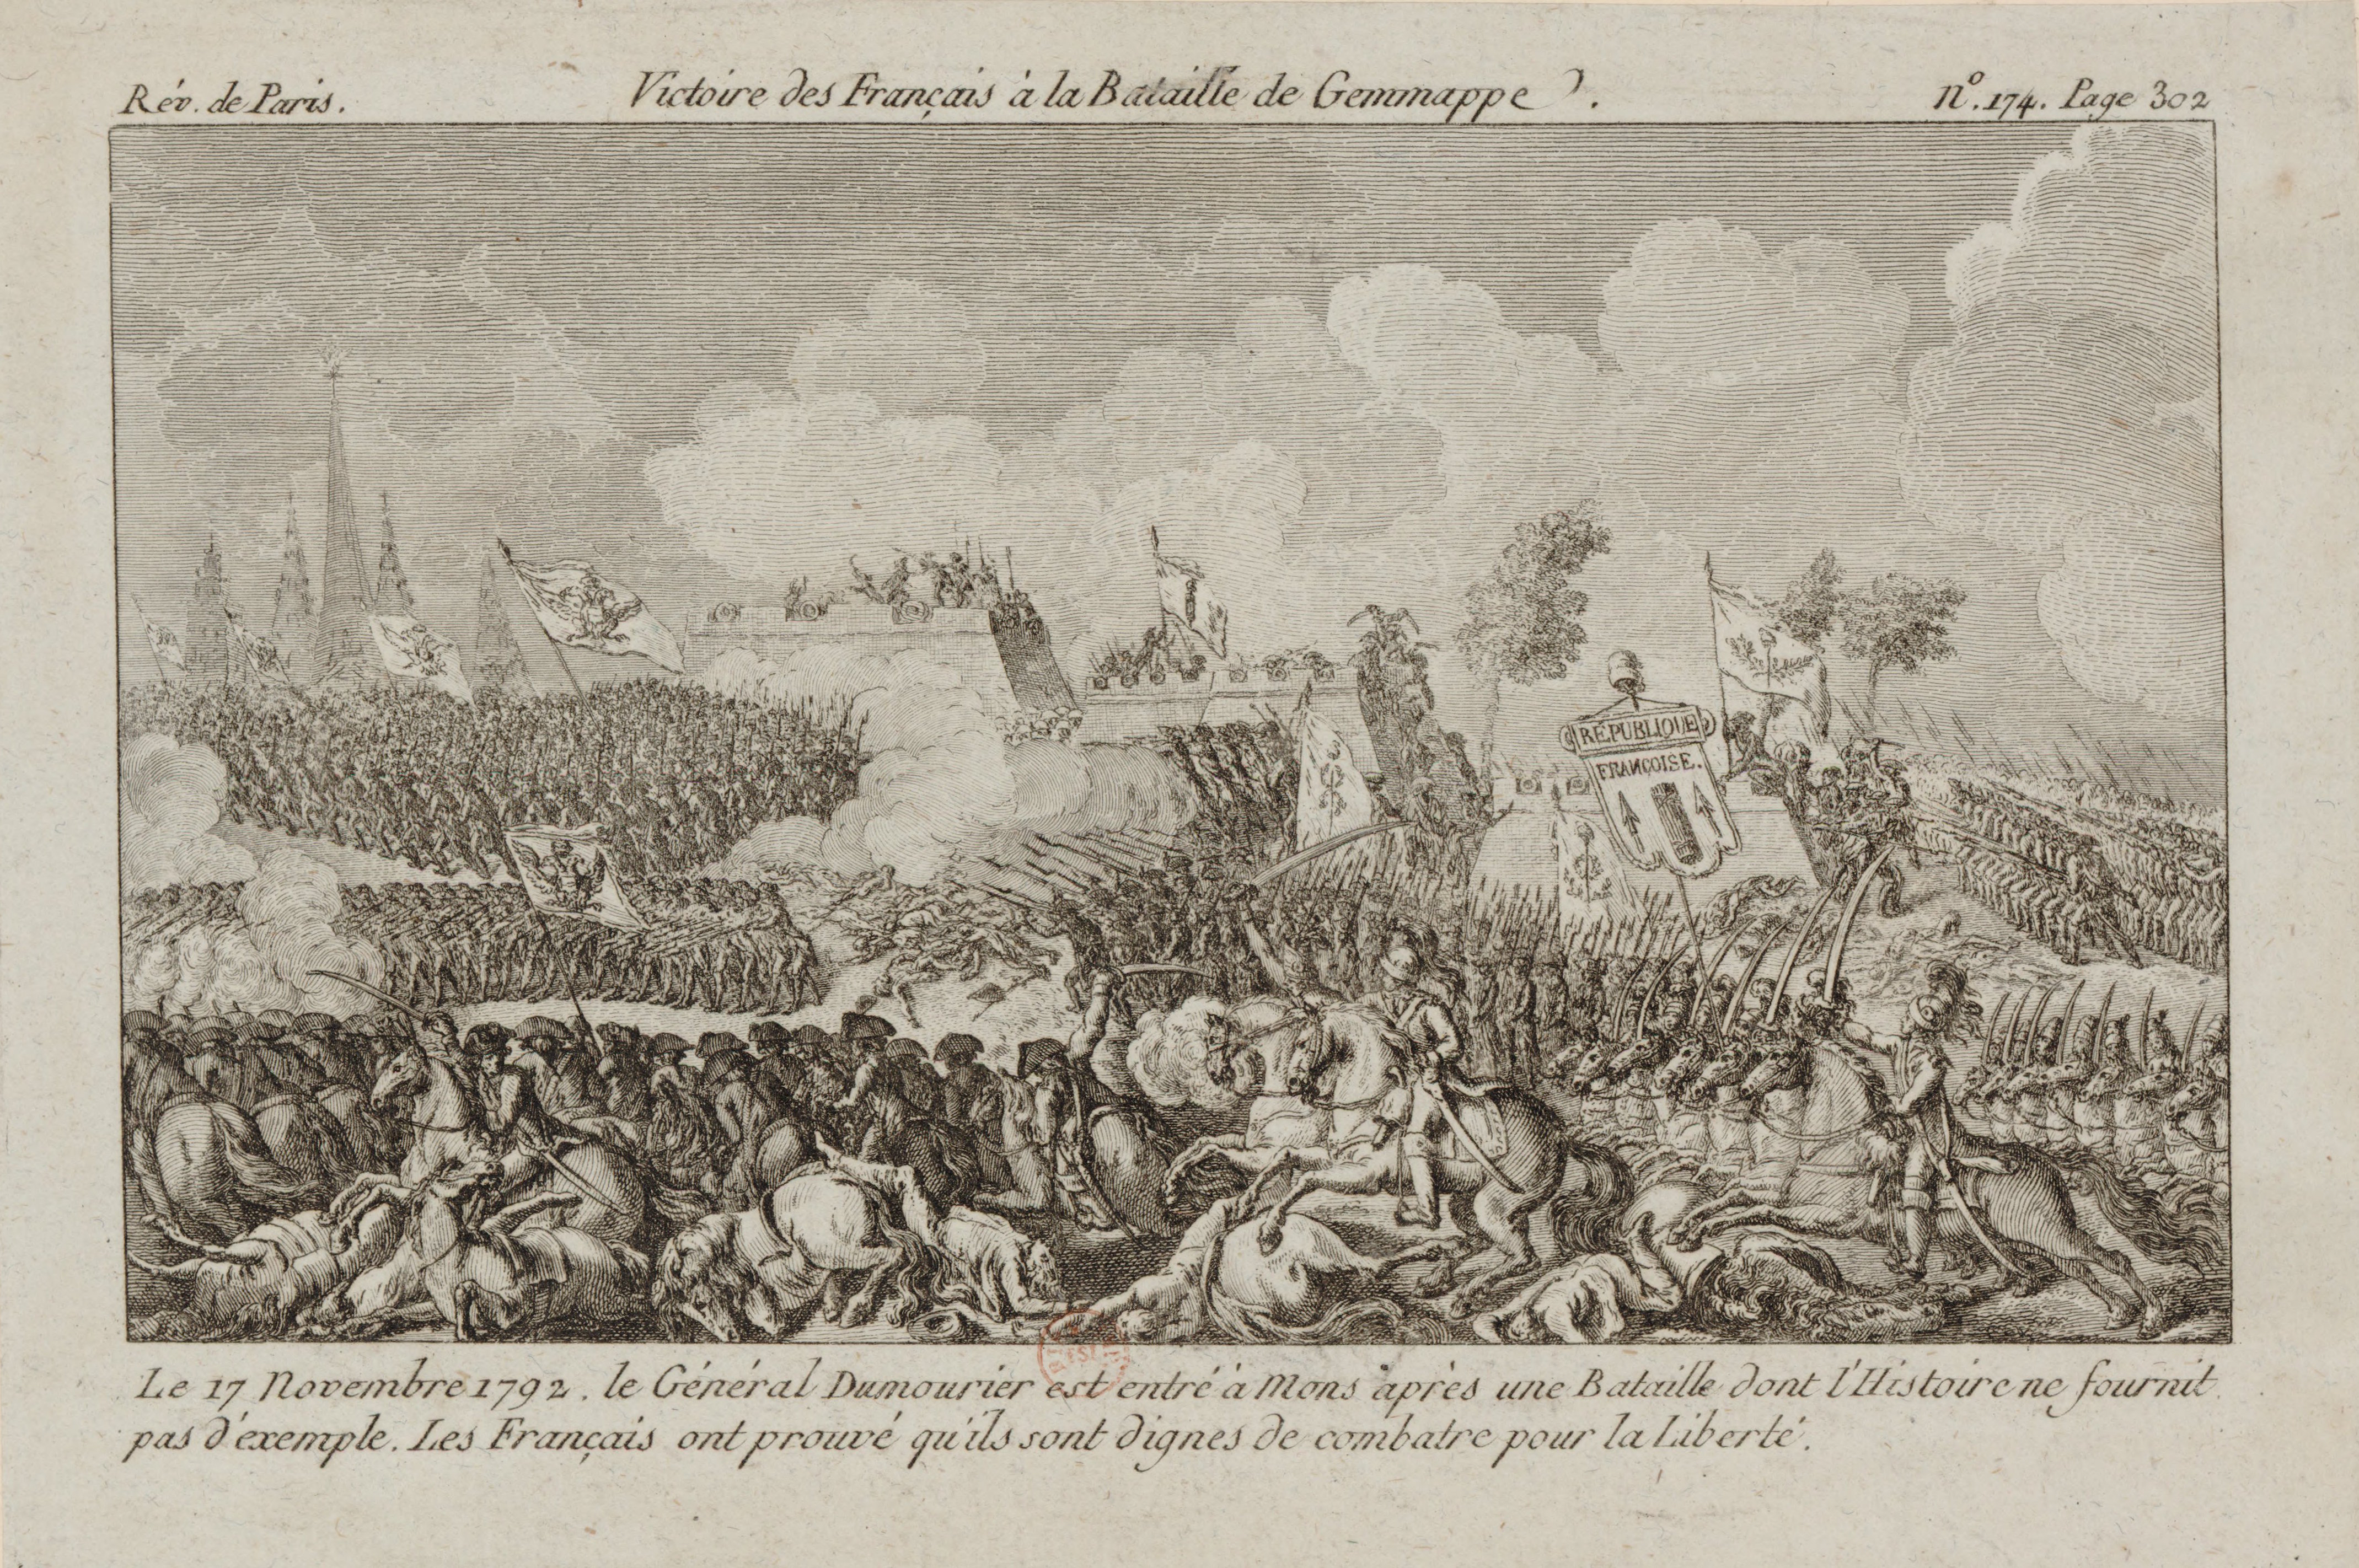 Engraving of the French victory at the Battle of Jemmappes